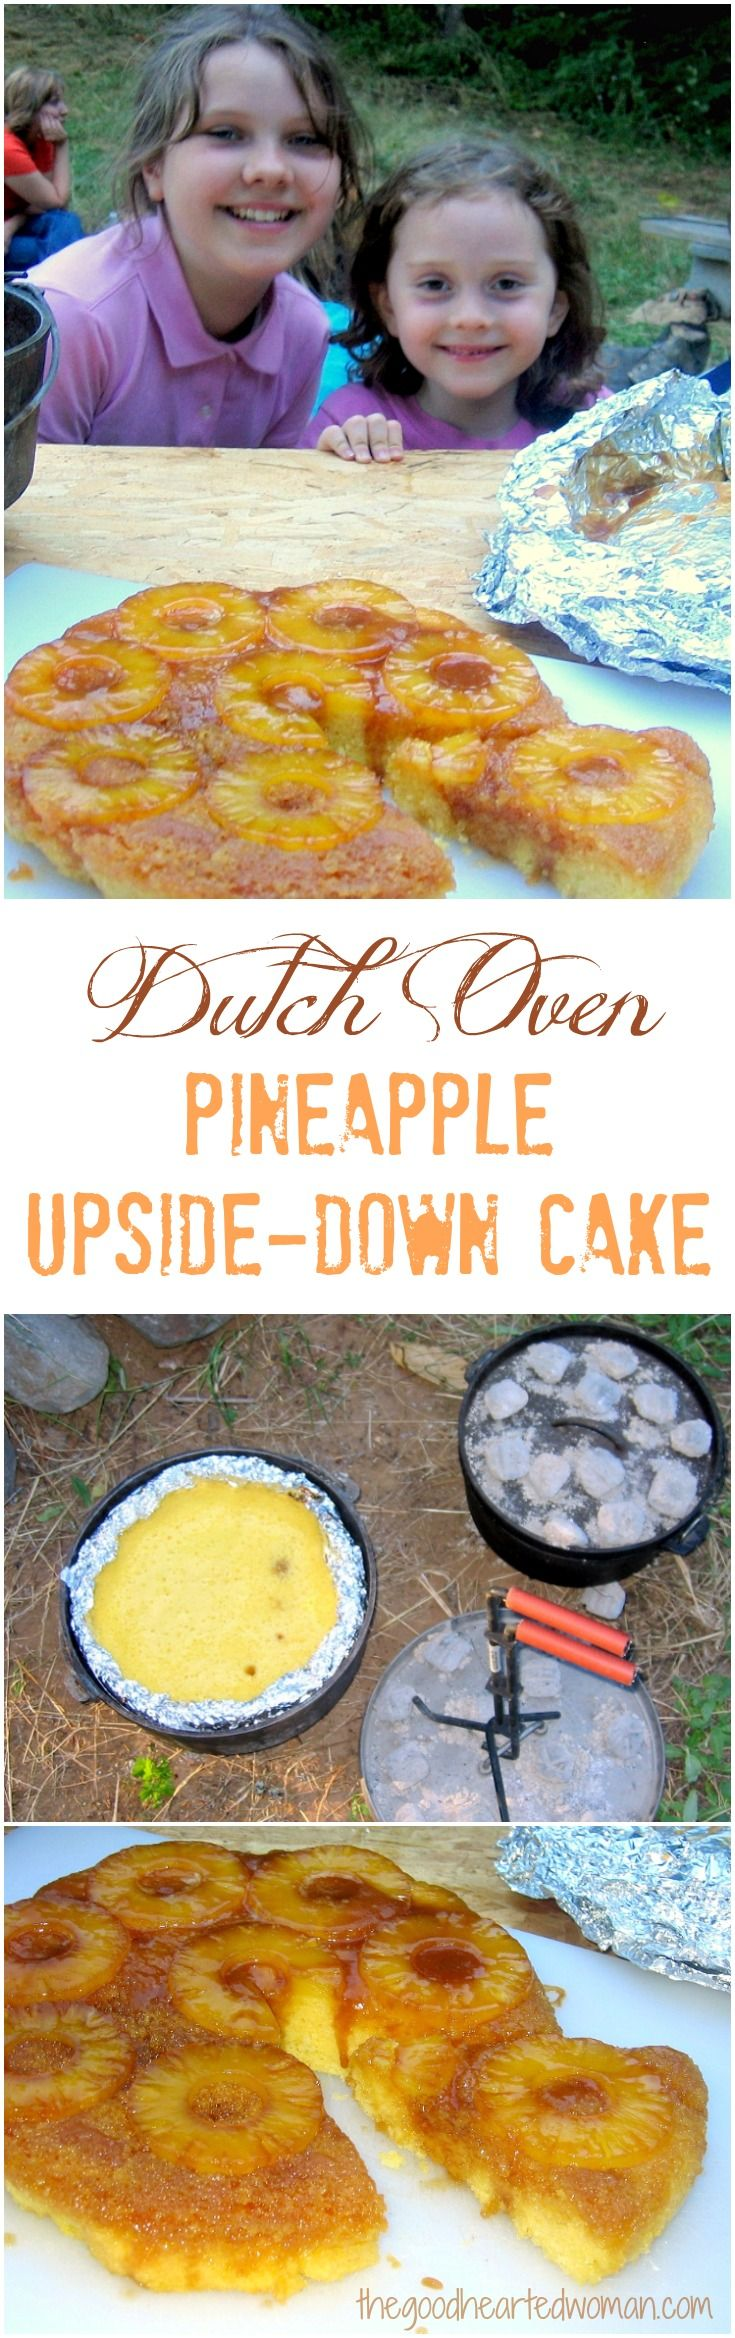 How to Make Dutch Oven Pineapple Upside-Down Cake {Easy Tutorial} | The Good Hearted Woman